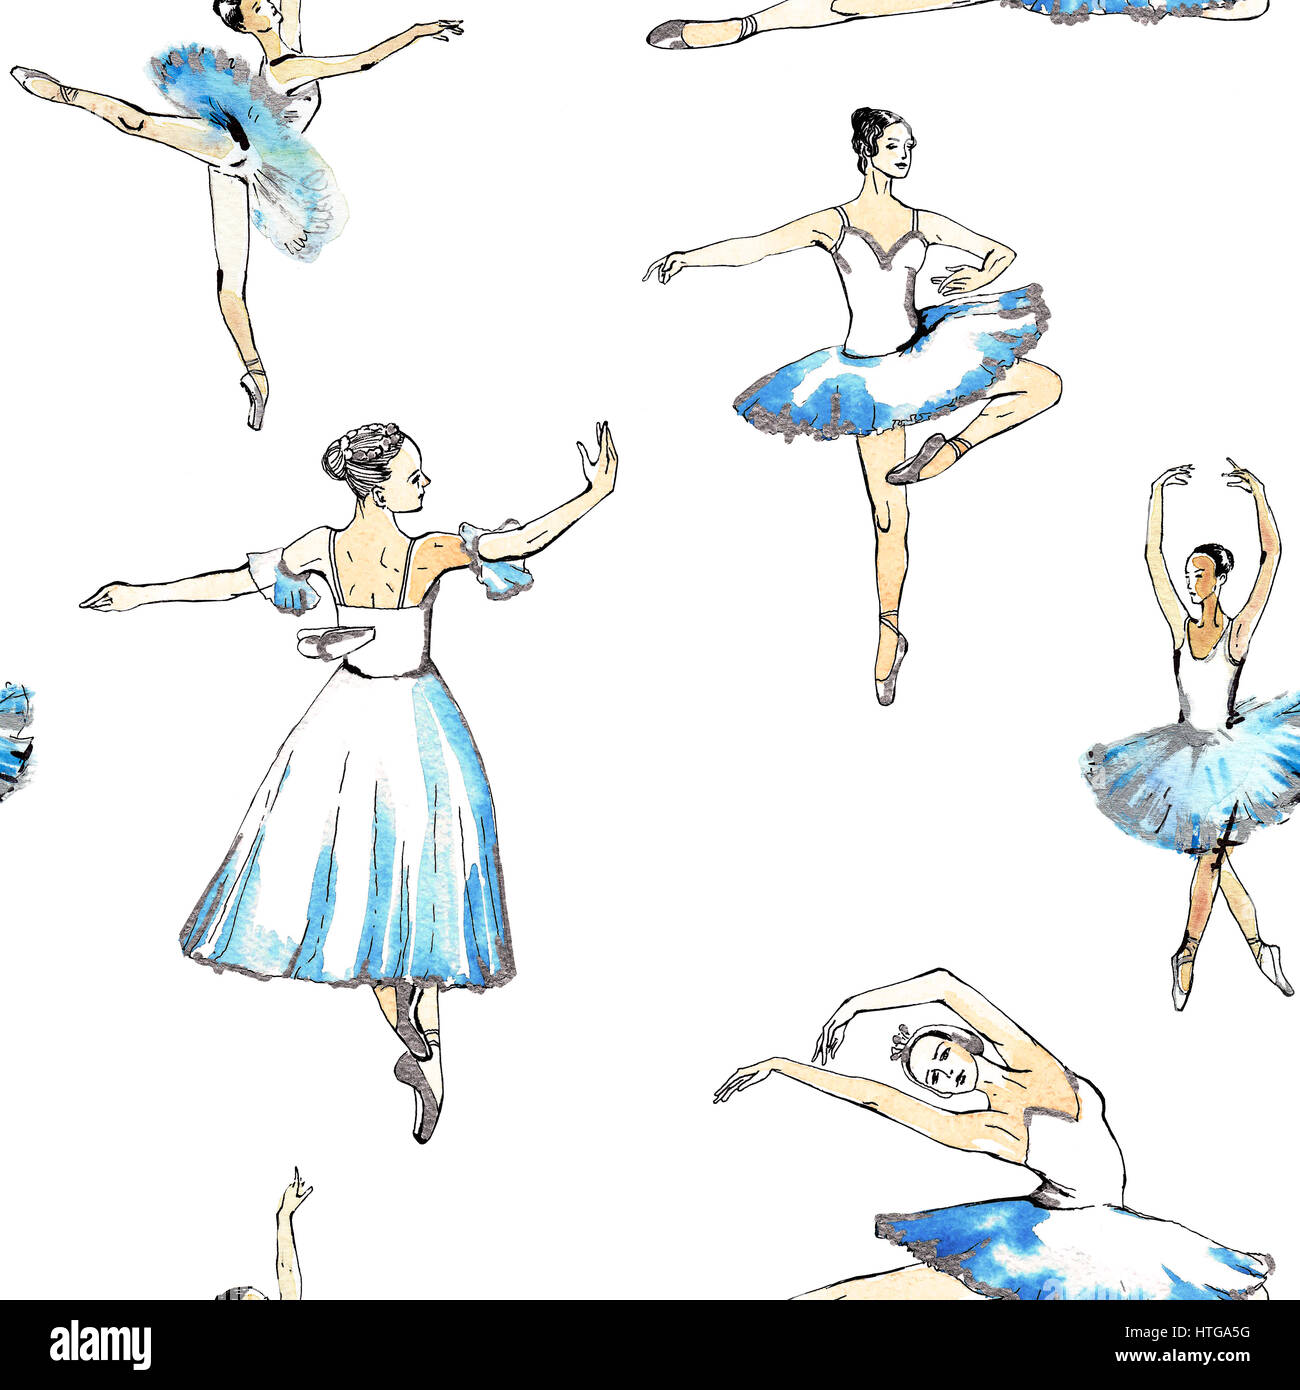 Seamless pattern of ballet dancers royalty free stock photography - Seamless Pattern Of Ballet Dancers Black And Silver Drawing Watercolor Painting Isolated On White Background Fabric Texture Wallpaper